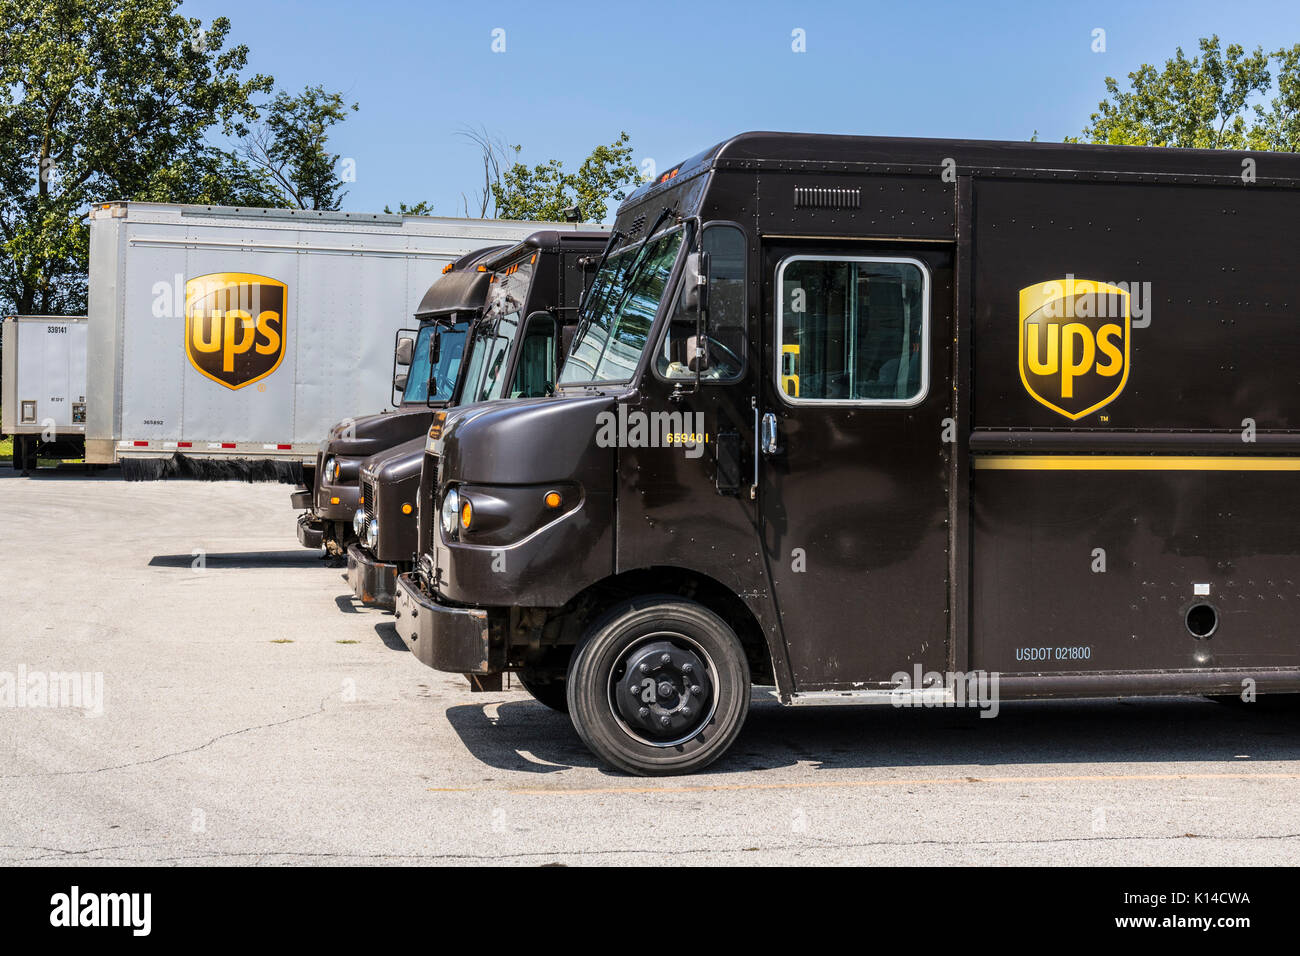 united parcel services Track your parcel delivery at upstodaycom  home parcel tracking  images  of ups are reproduced with permission of united parcel service of america, inc.